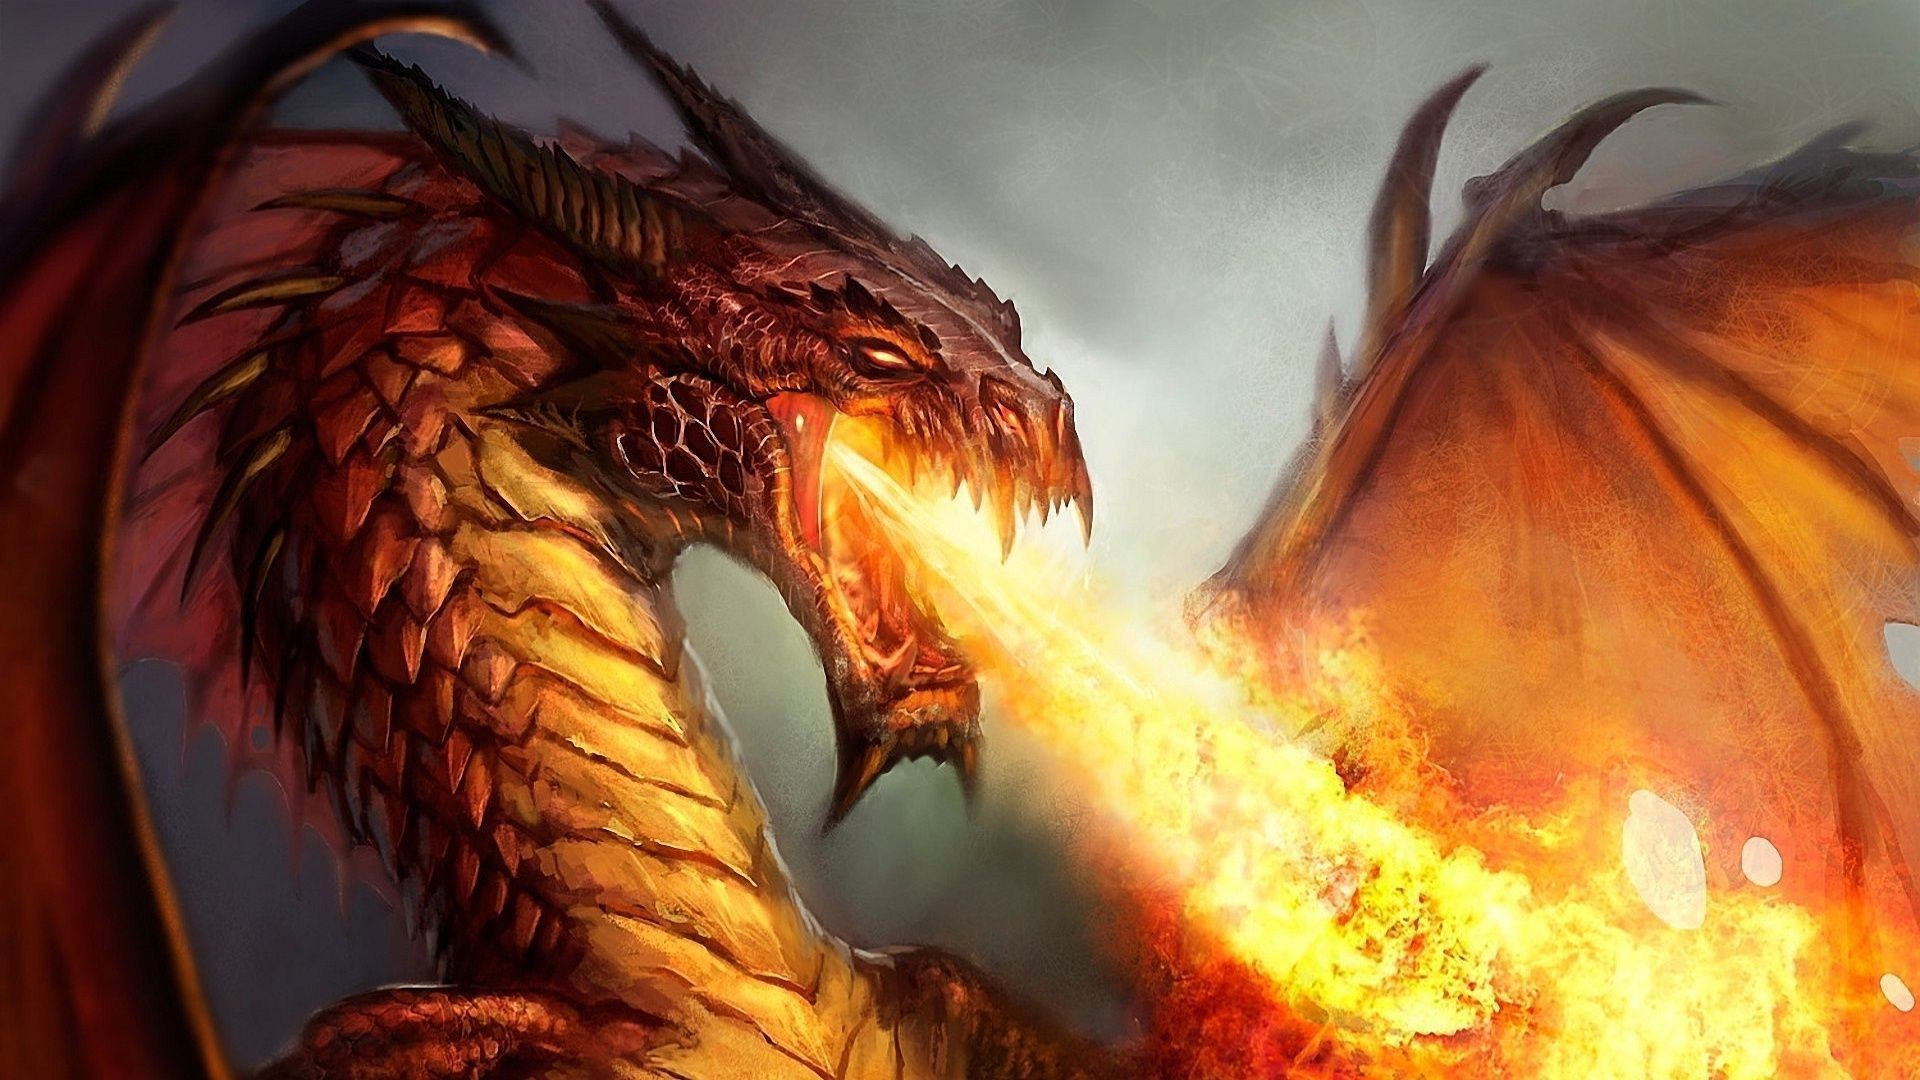 HD Dragon Wallpapers (68+ images)